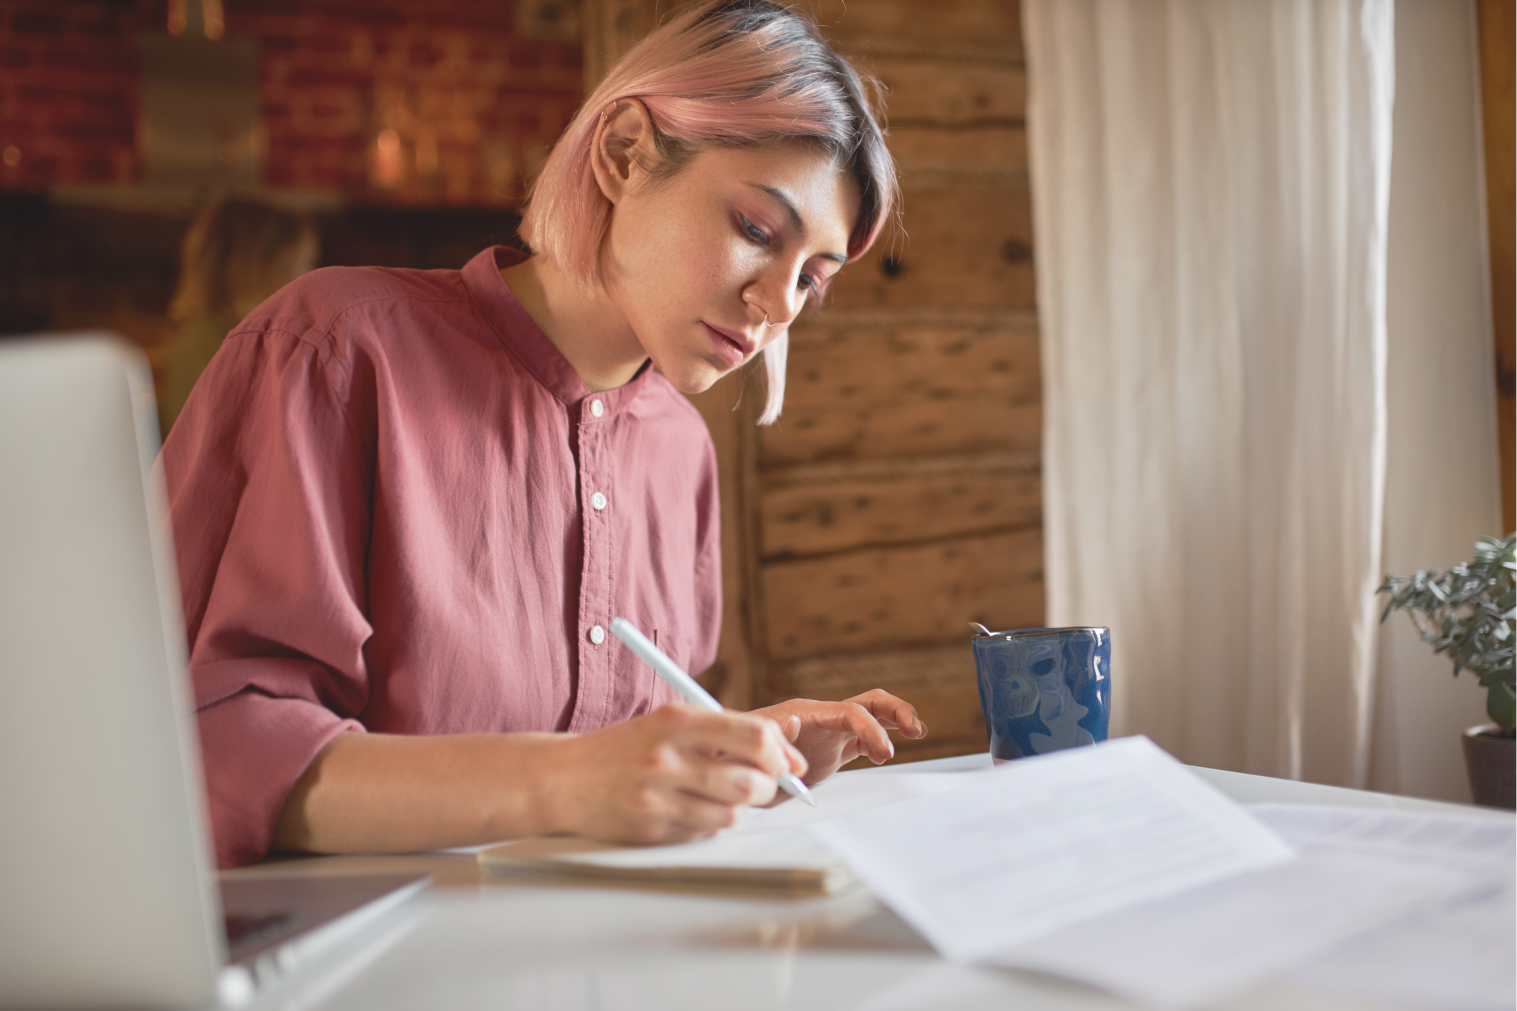 Young woman pauses pensively while handwriting condolence note